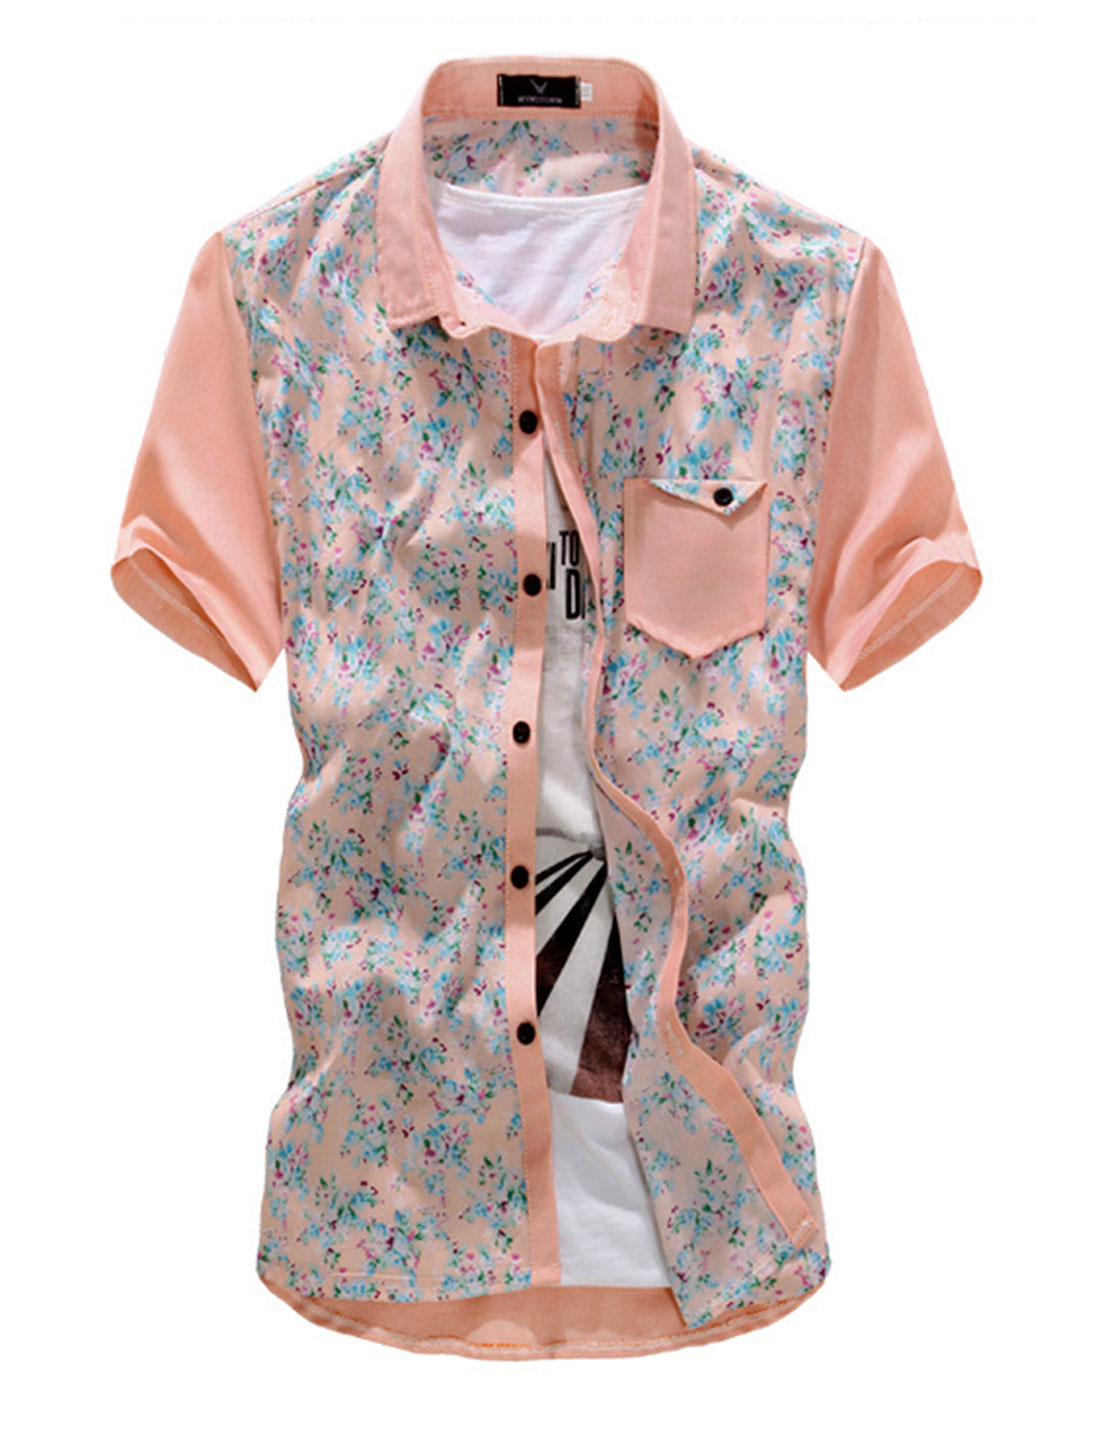 Men Point Collar Floral Prints Single Breasted Short Sleeve Shirt Pink M